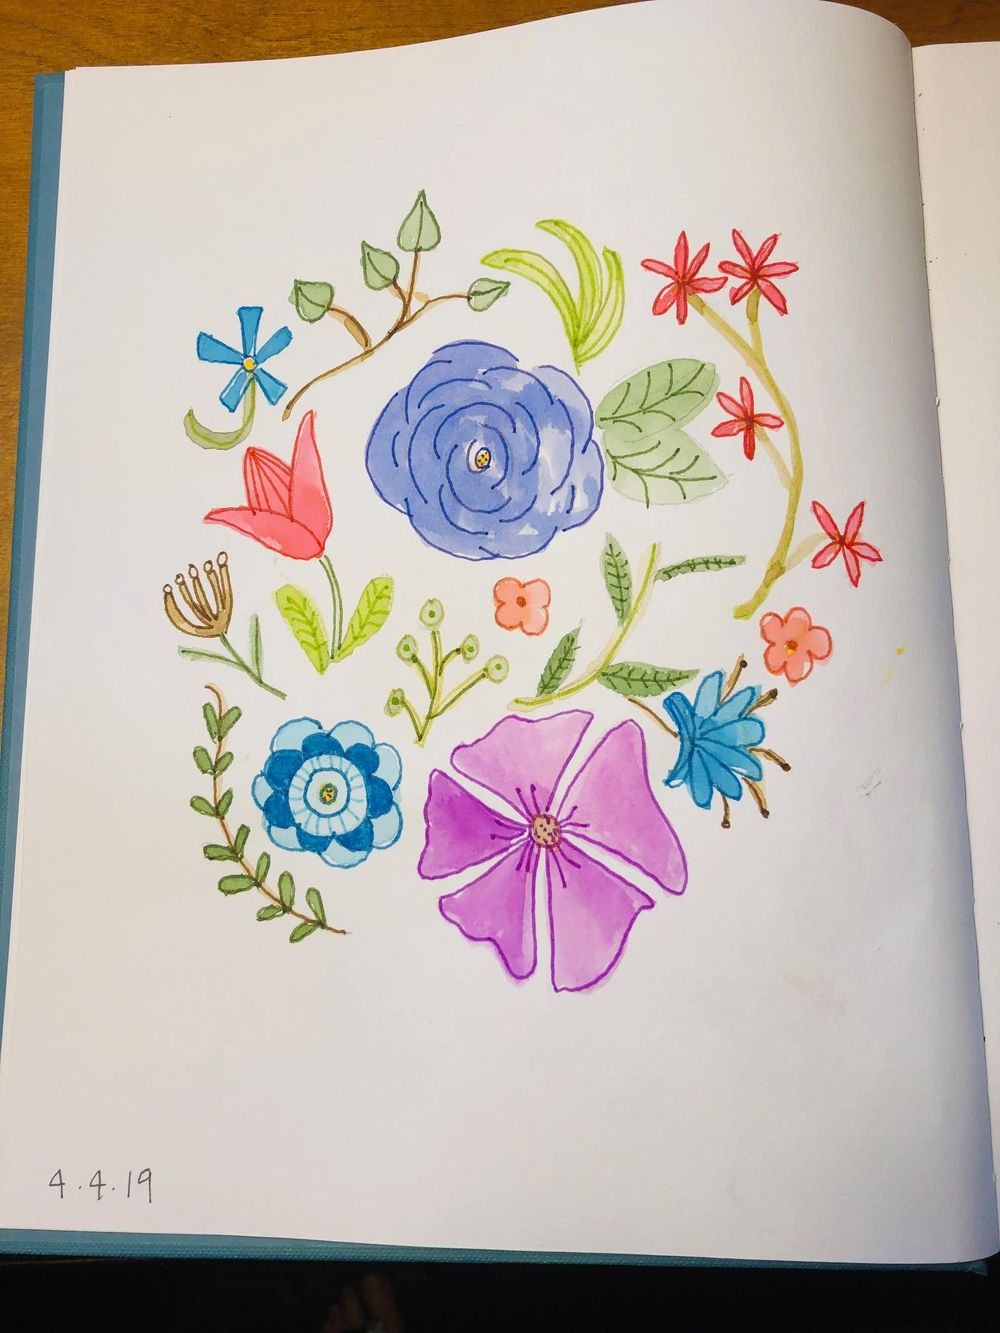 Florals and Bouquet :-) - image 1 - student project